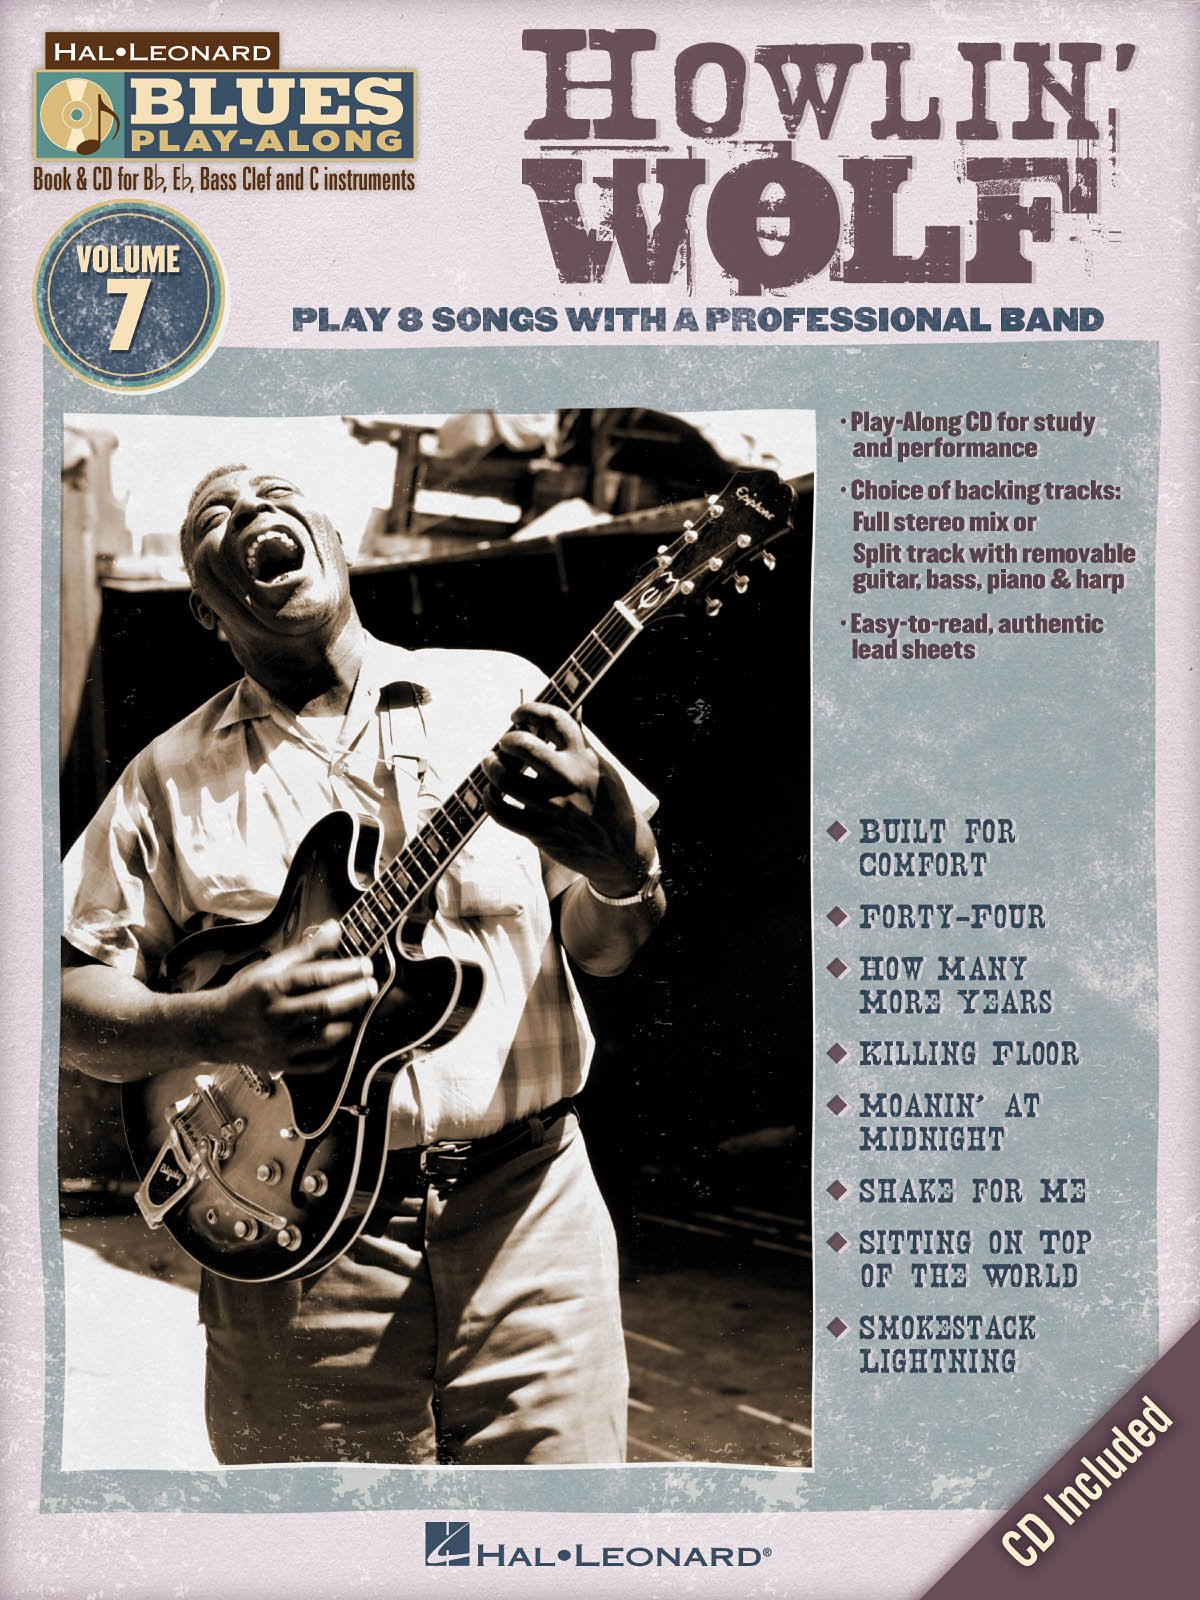 Howlin' Wolf - Blues Play-Along Volume 7 - Book and CD Package